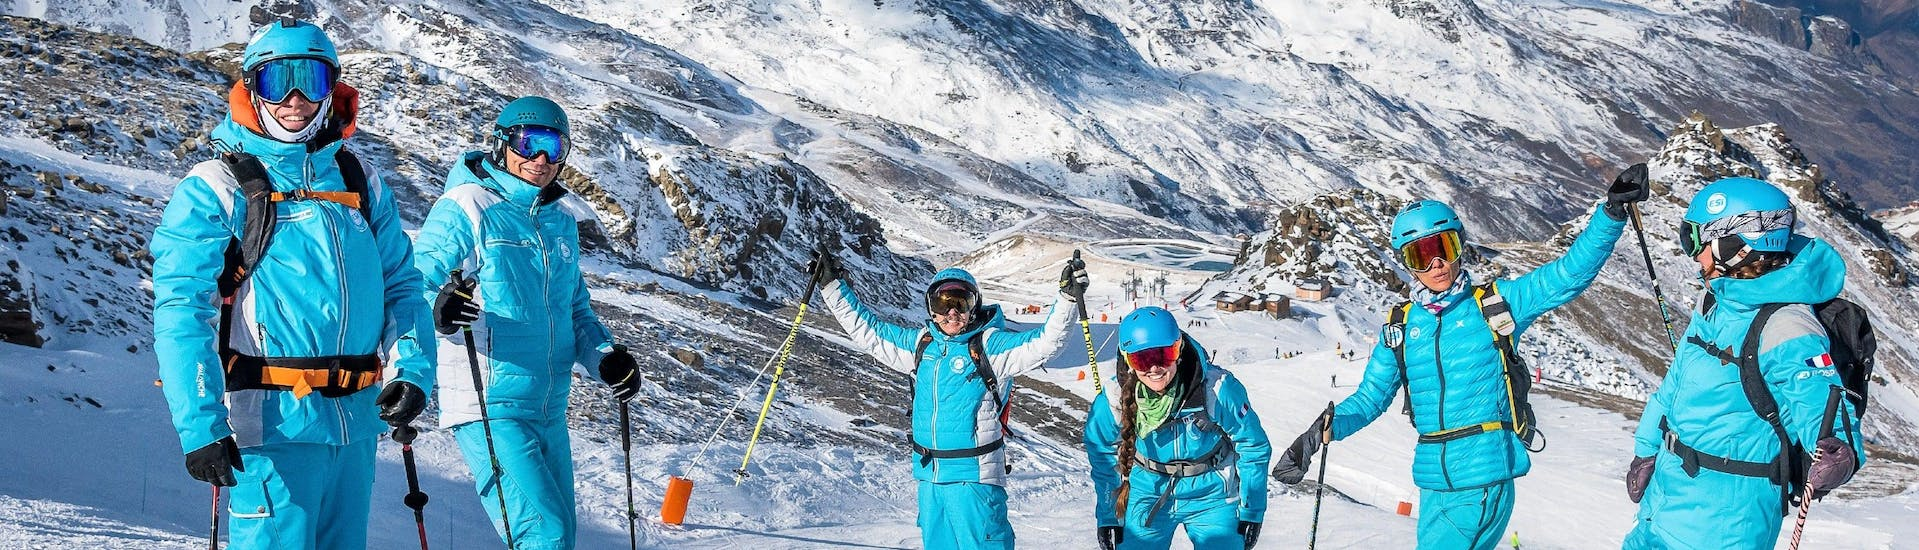 Ski instructors from the ski school ESI Ski Family in Val Thorens and Risoul are having a good time in the mountains, before the start of their ski lessons.